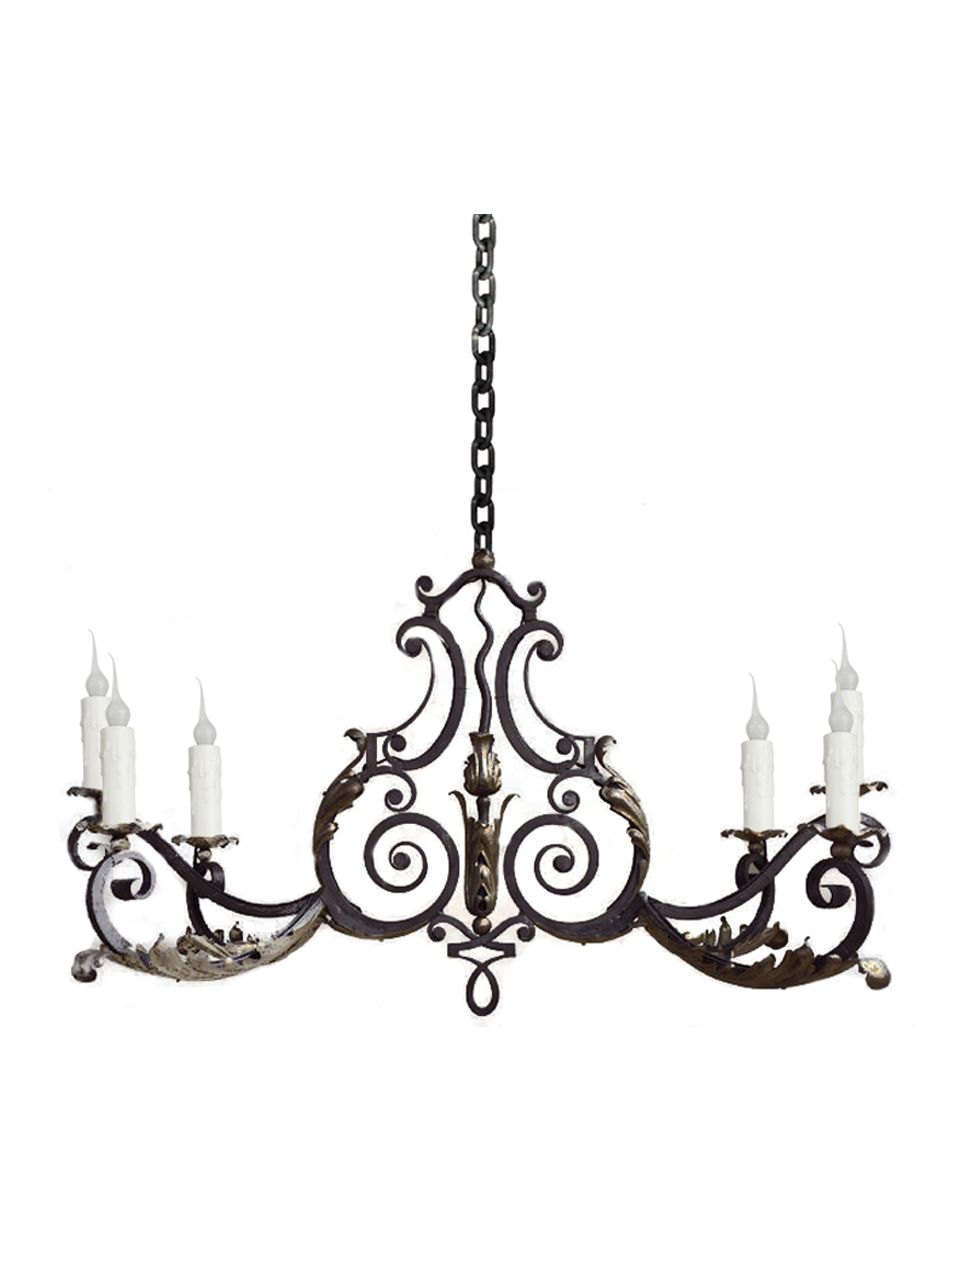 Custom hand forged iron 6 light chandelier by www